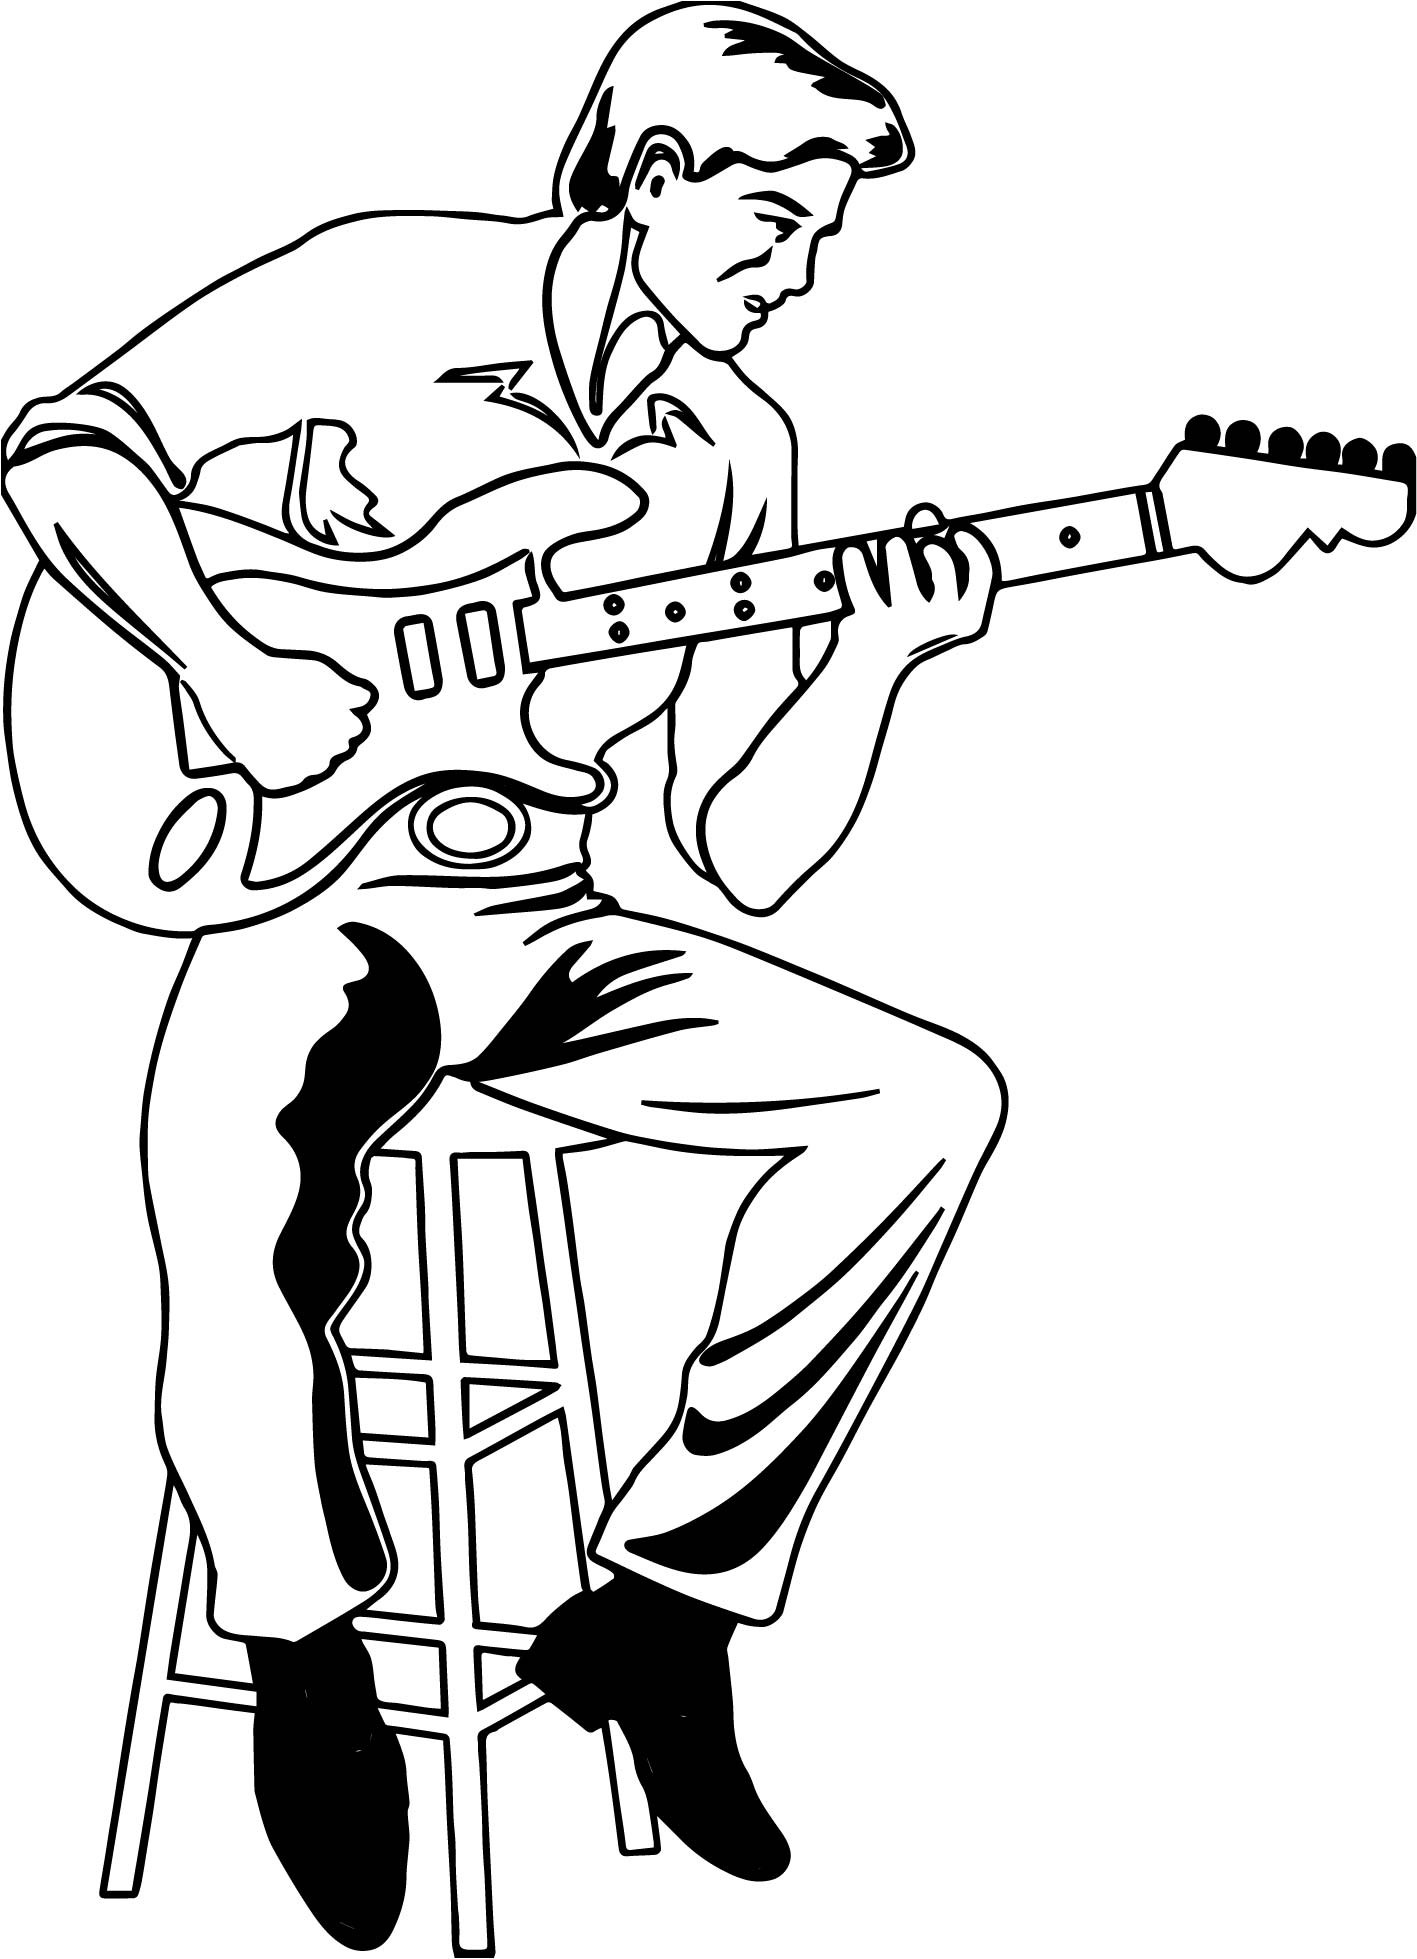 1417x1959 Amazing Guitar Player Coloring Page Kermit The Frog Playing Free